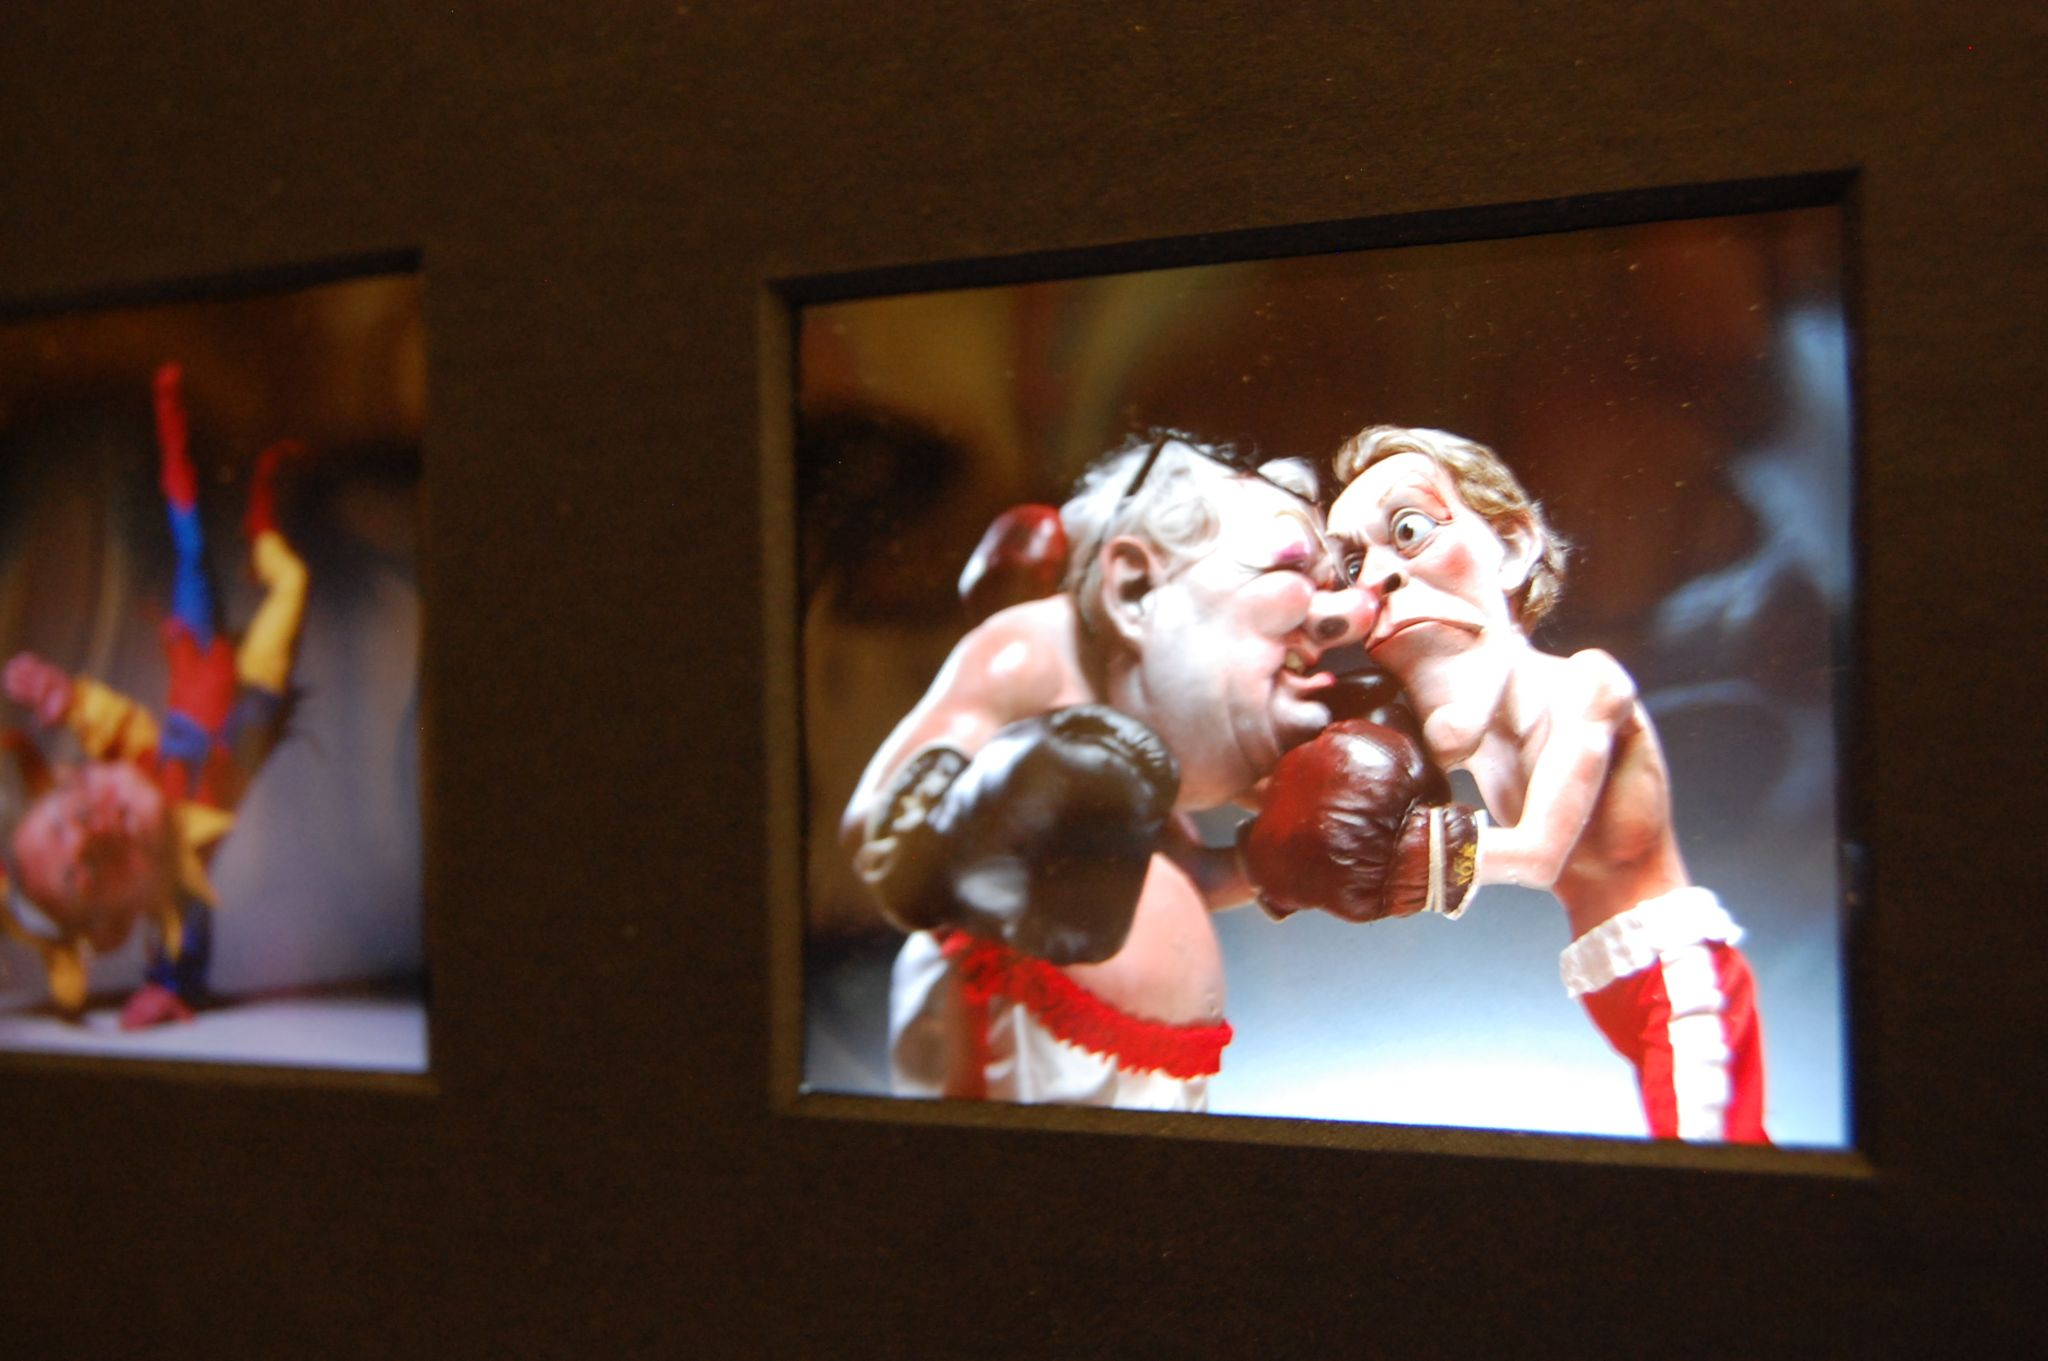 Spitting Image characters as boxers